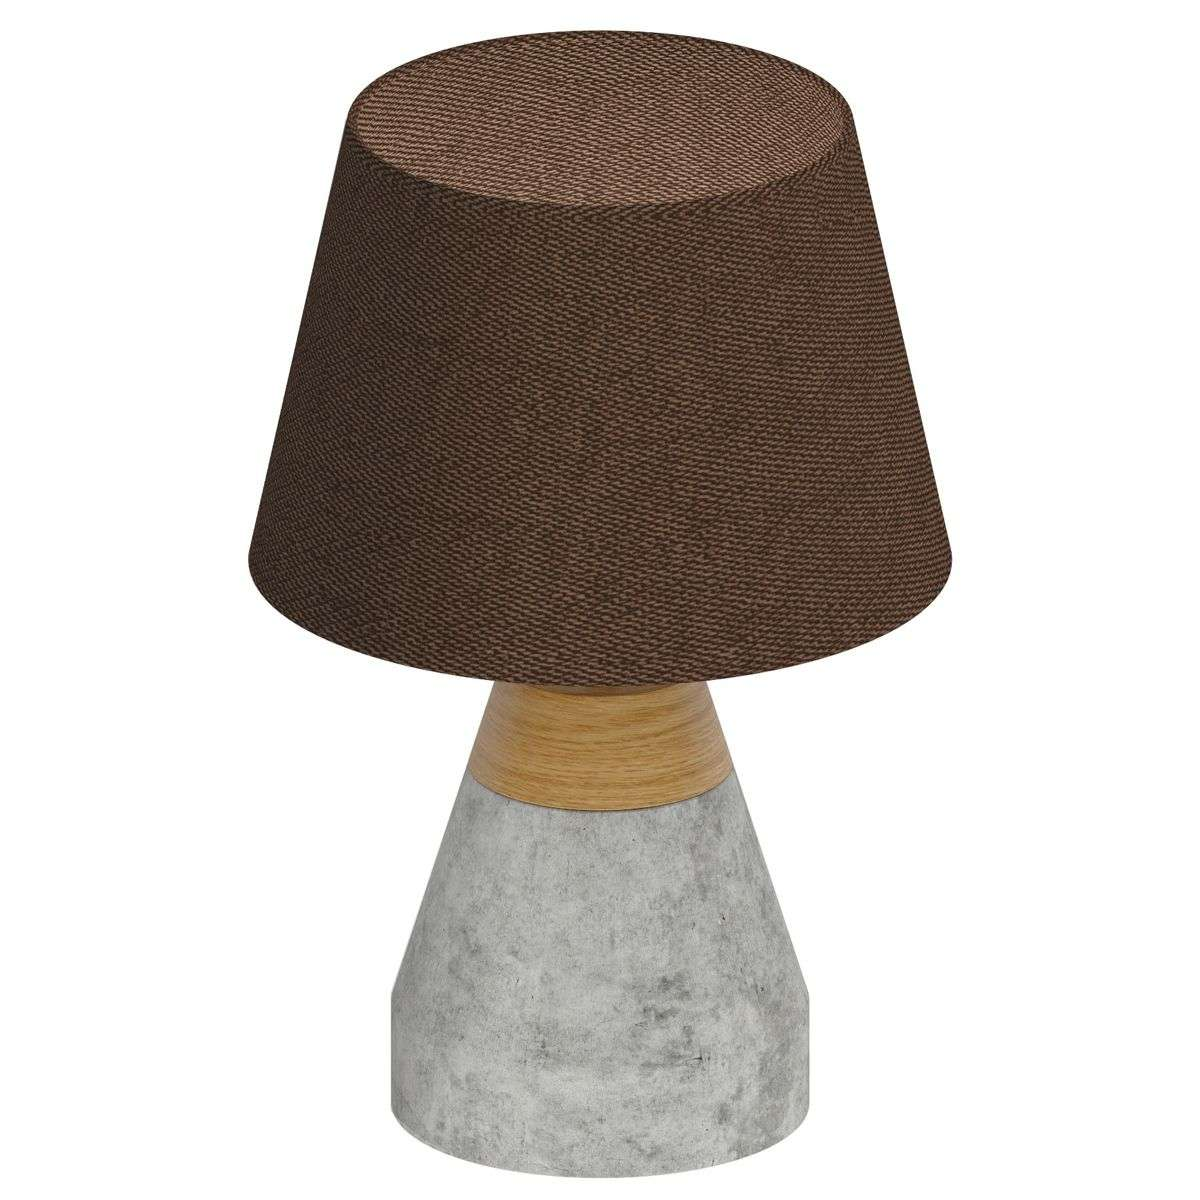 Stylish Tarega fabric table lamp, concrete base-3031819-31